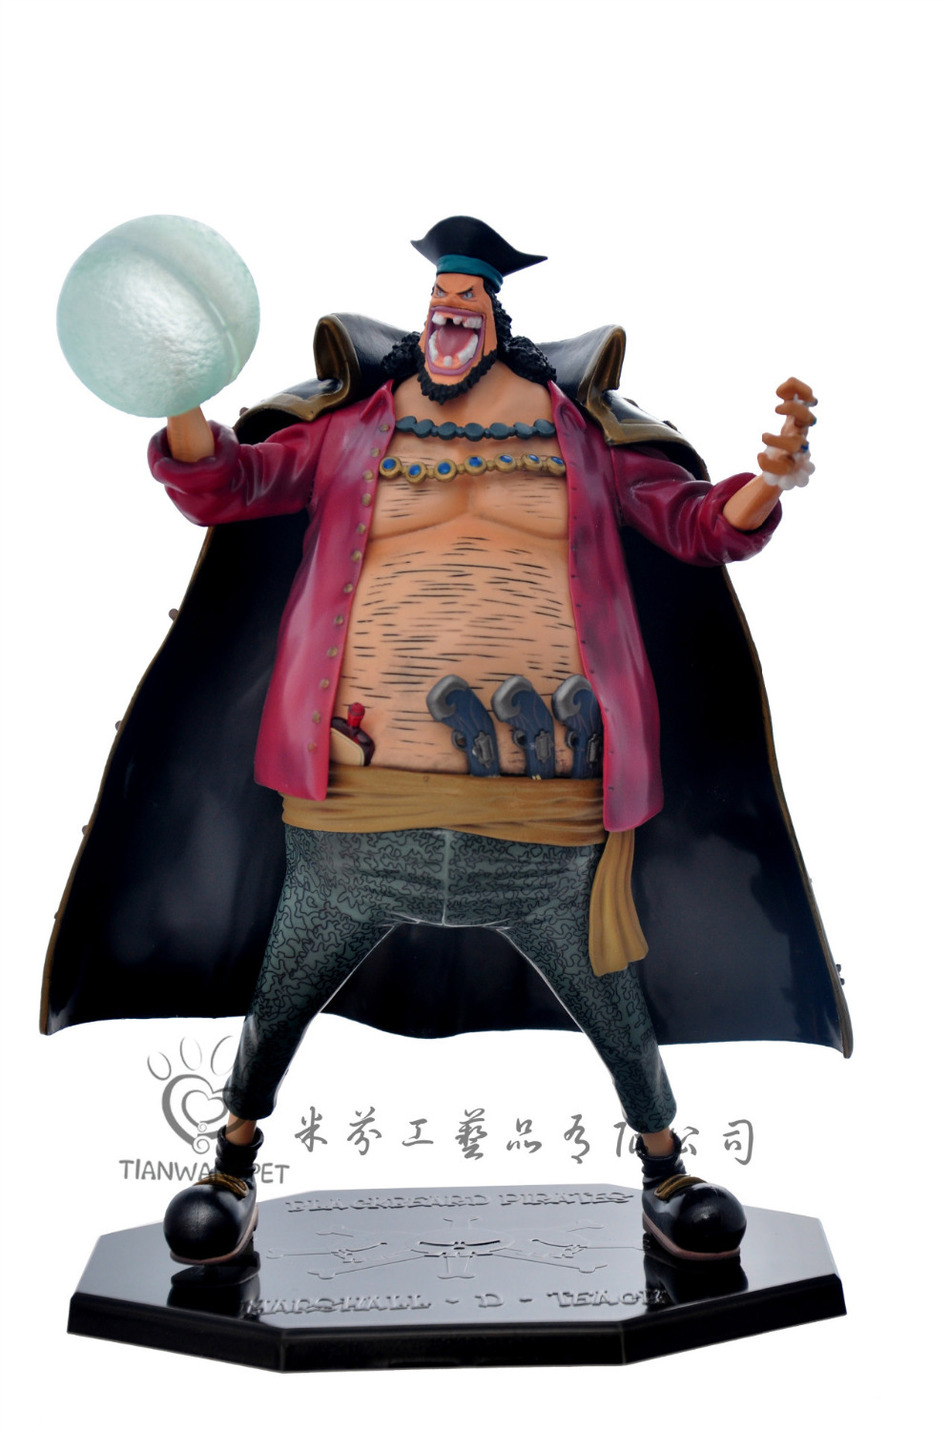 Classic Anime 25cm One Piece POP Blackbeard Edward Teach Anime Collectible Action Figures PVC Collection toys christmas gift hot sale 26cm anime shanks one piece action figures anime pvc brinquedos collection figures toys with retail box free shipping